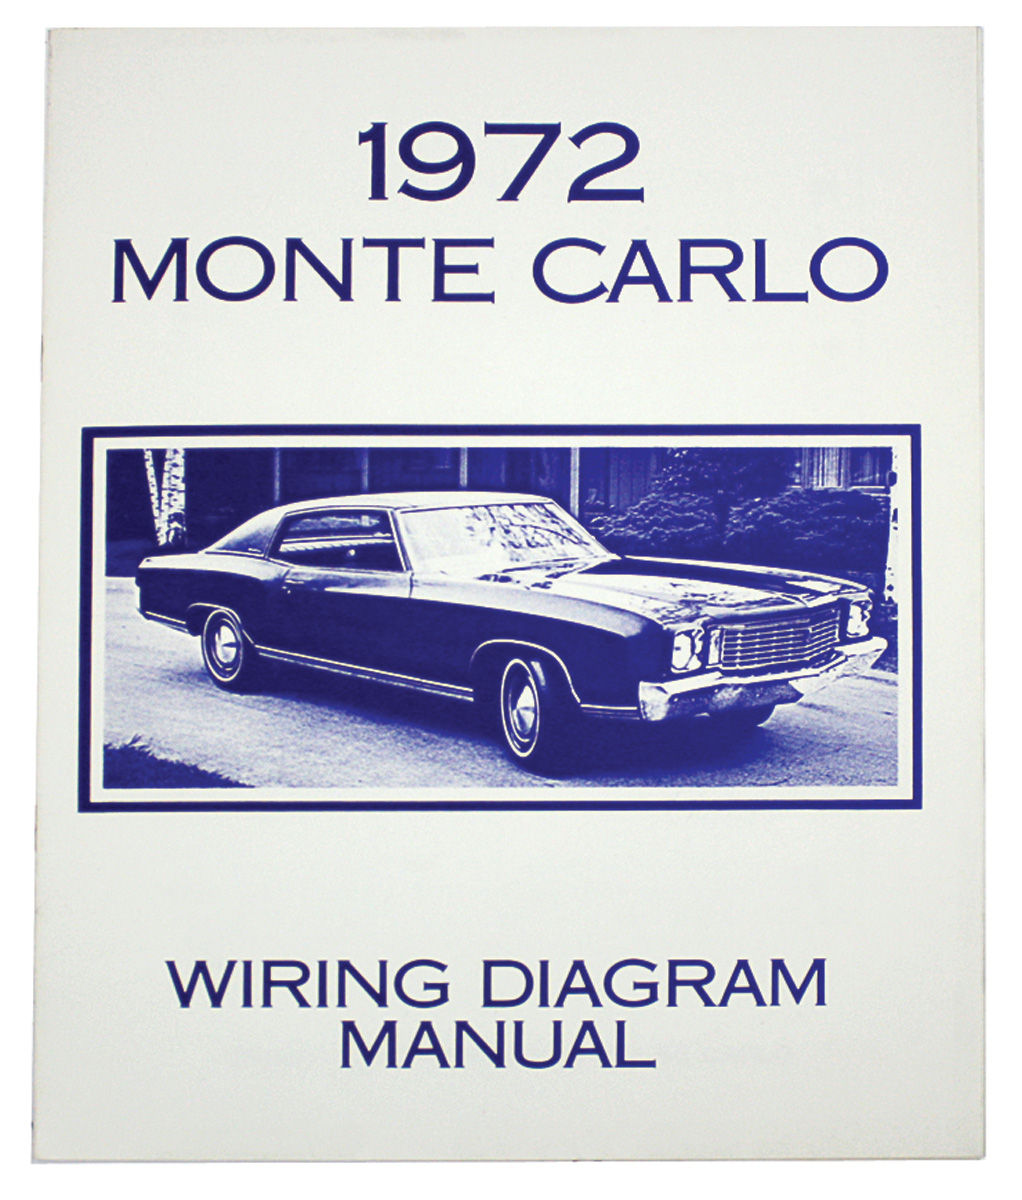 Monte Carlo Wiring Diagram Manuals Fits 1971 Monte Carlo